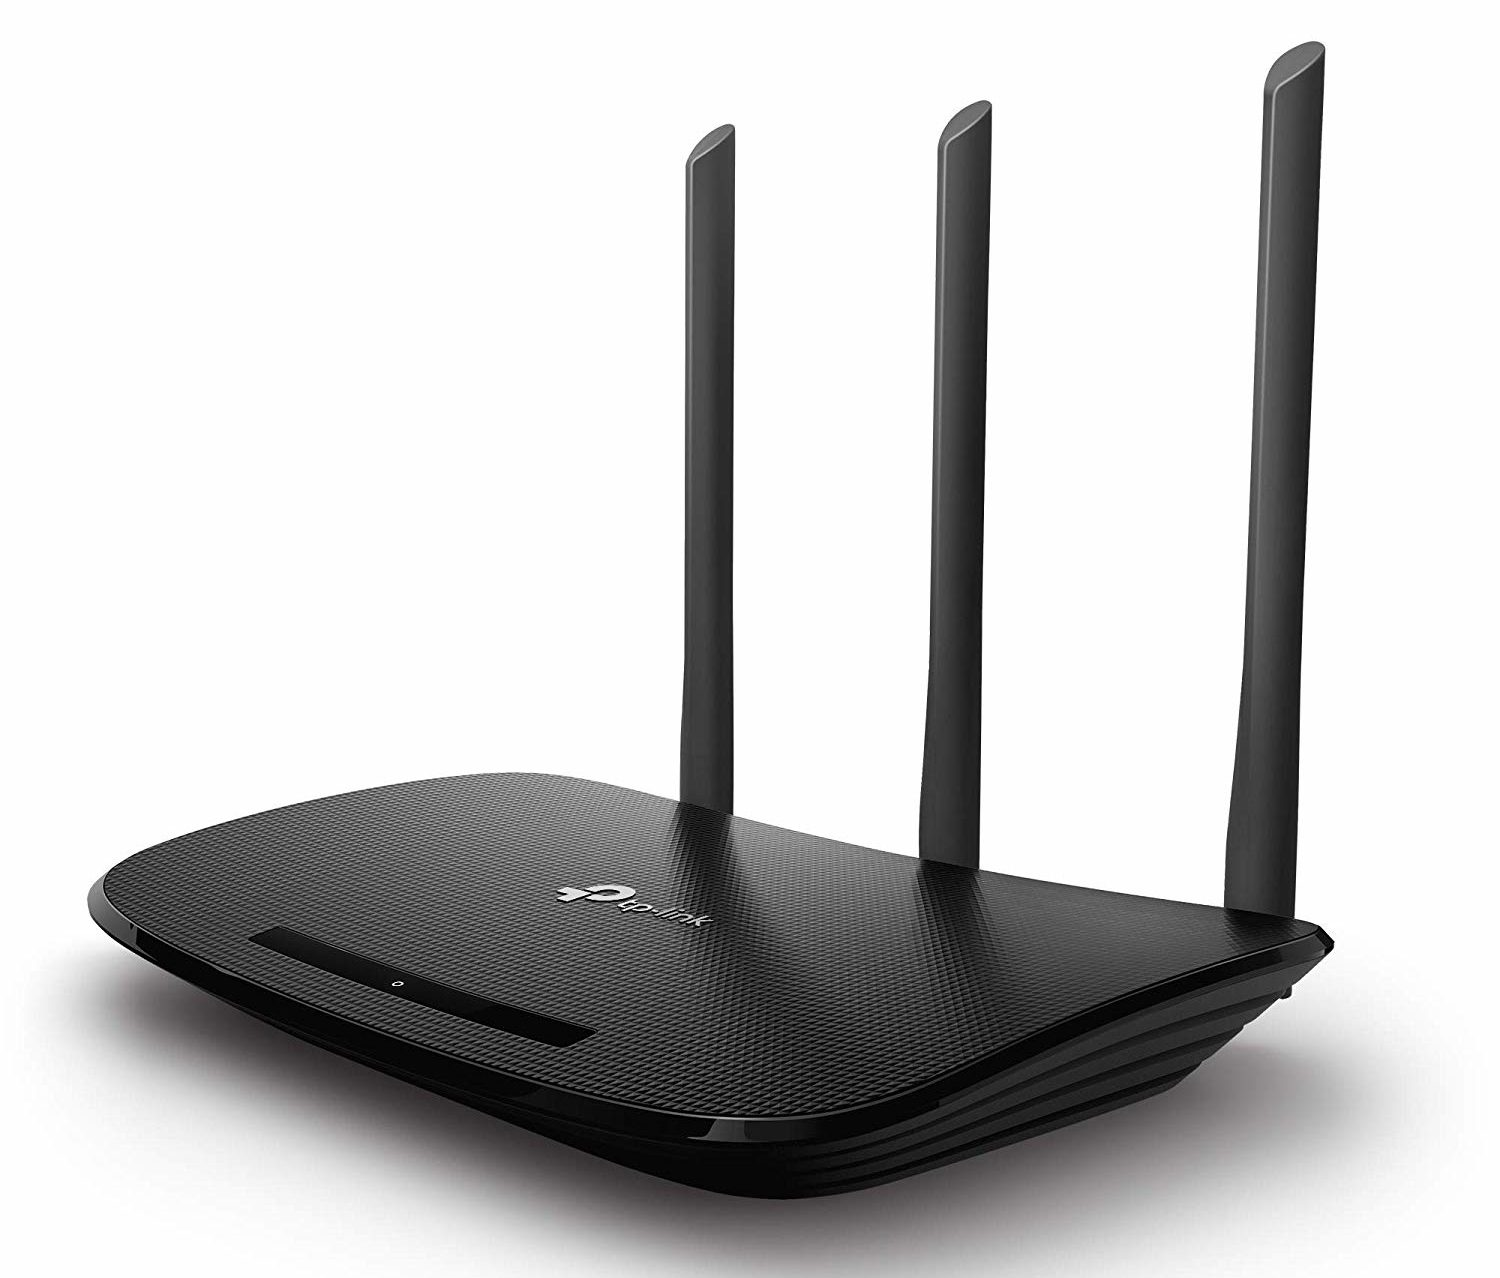 TP-Link N450 Wireless Router TL-WR940N